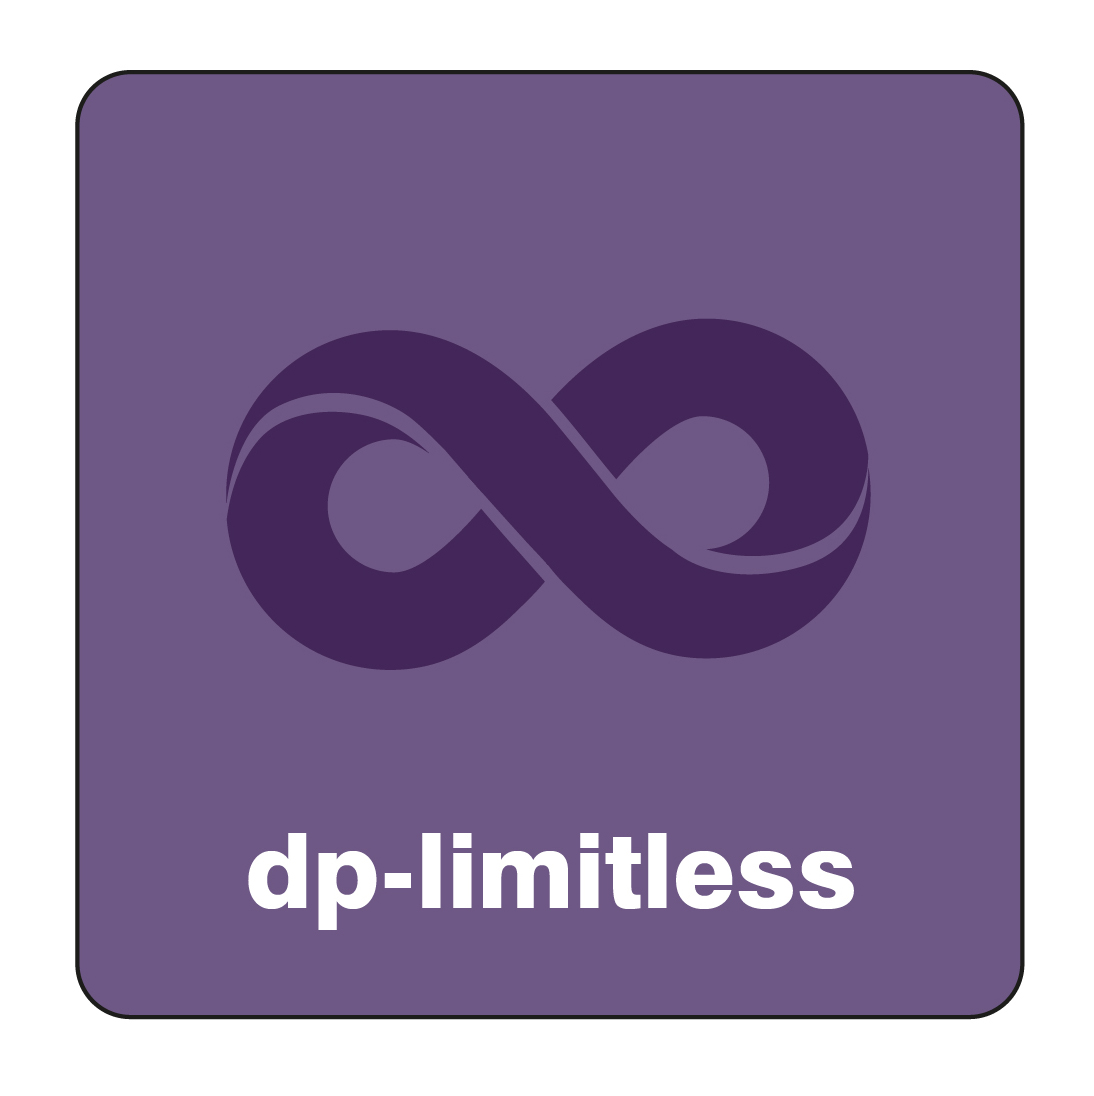 dp-limitless Coming Soon